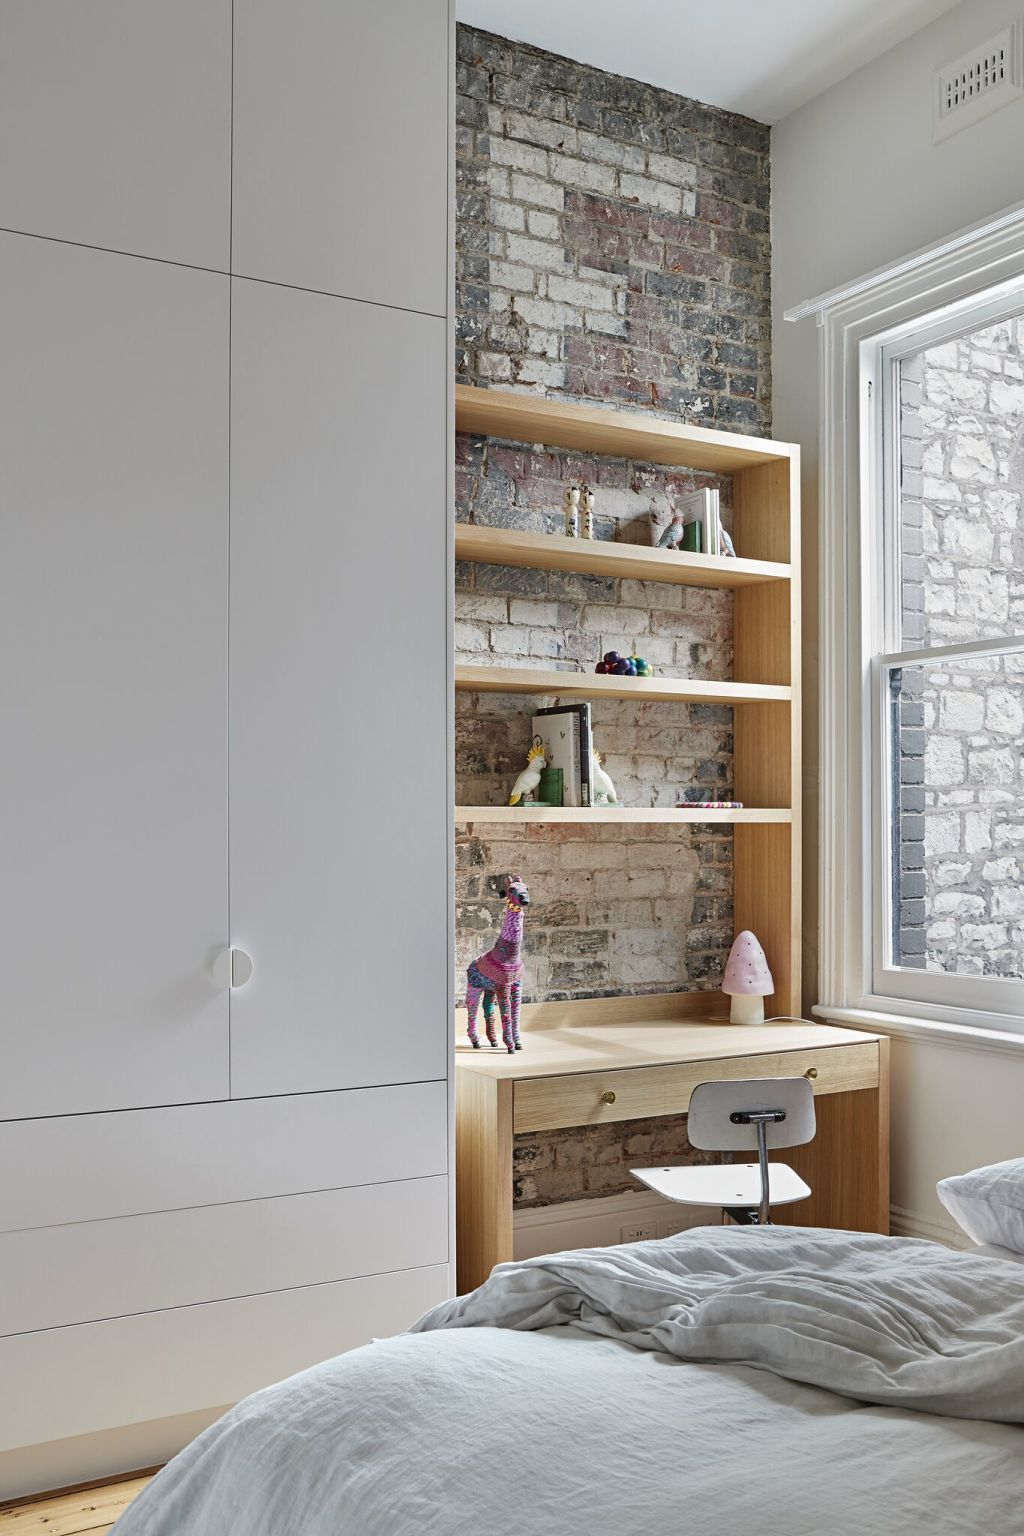 old_stone_and_advertising_daubed_brick_remain_visible_in_a_modern_bedroom._Pix_Shannon_McGrath_ayuozq